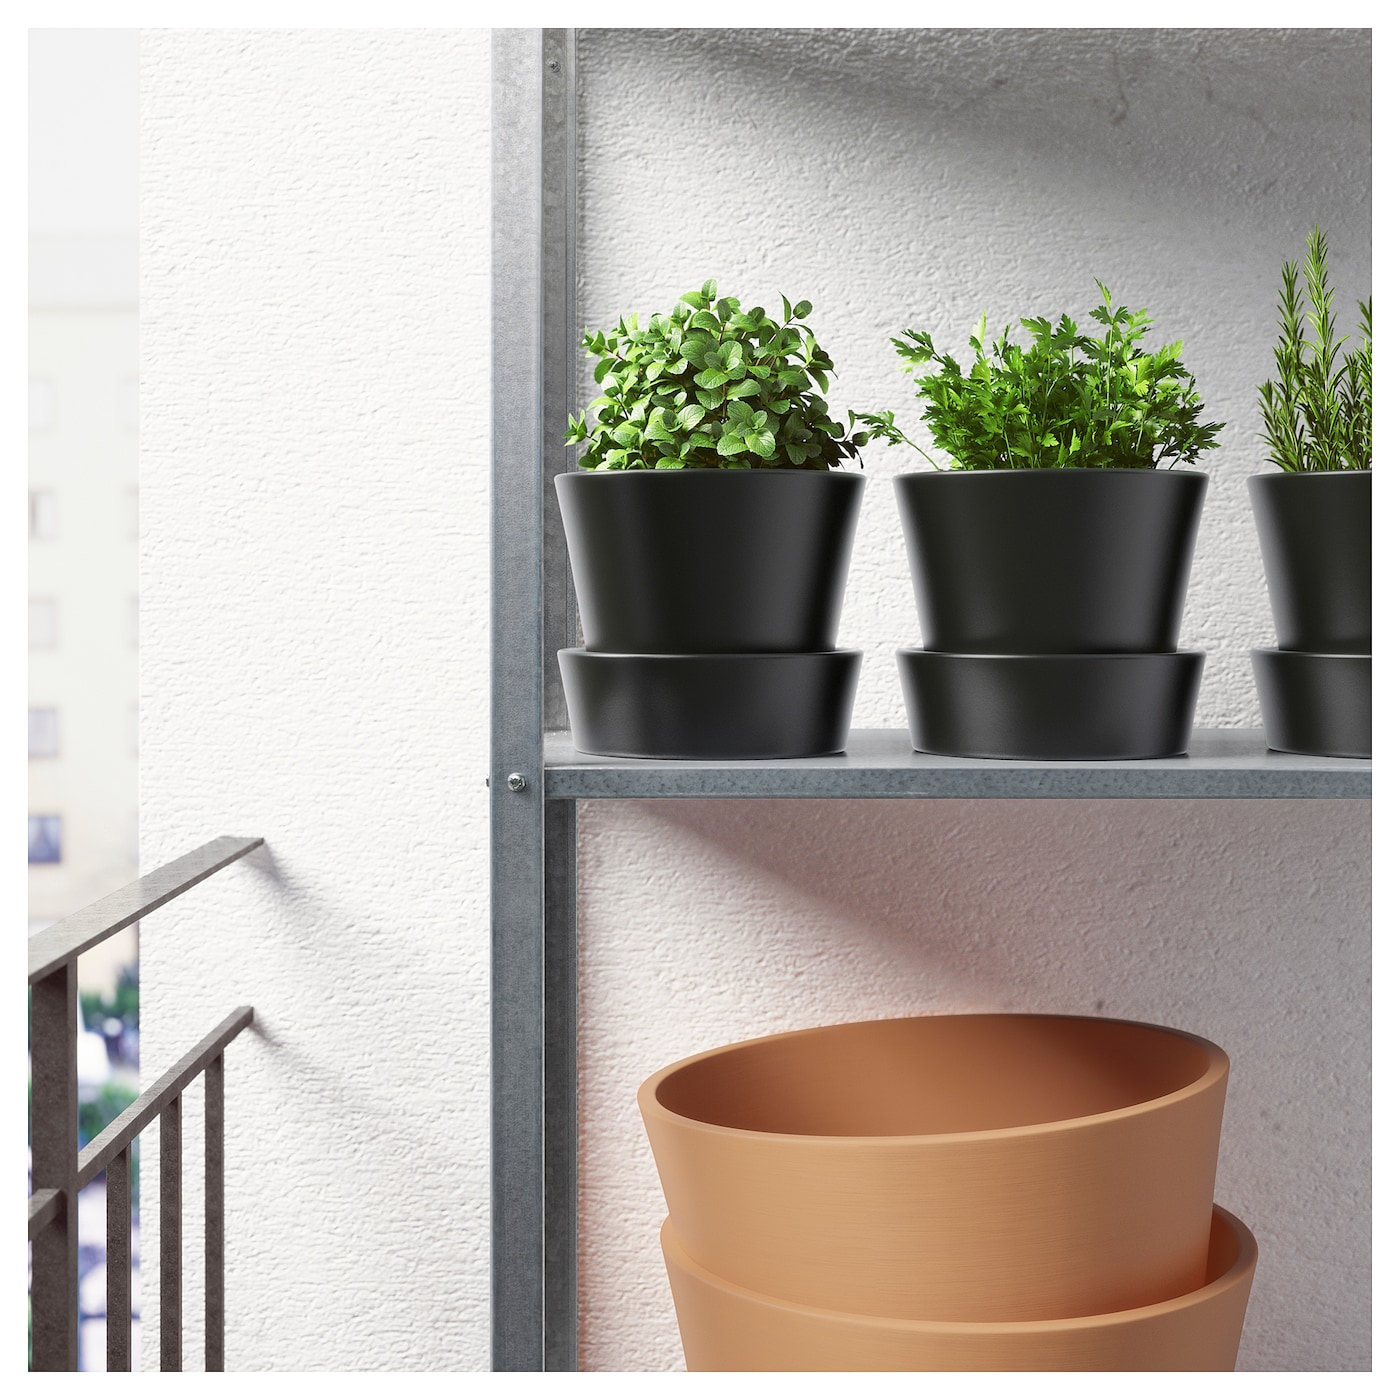 IKEA SENAP plant pot with saucer